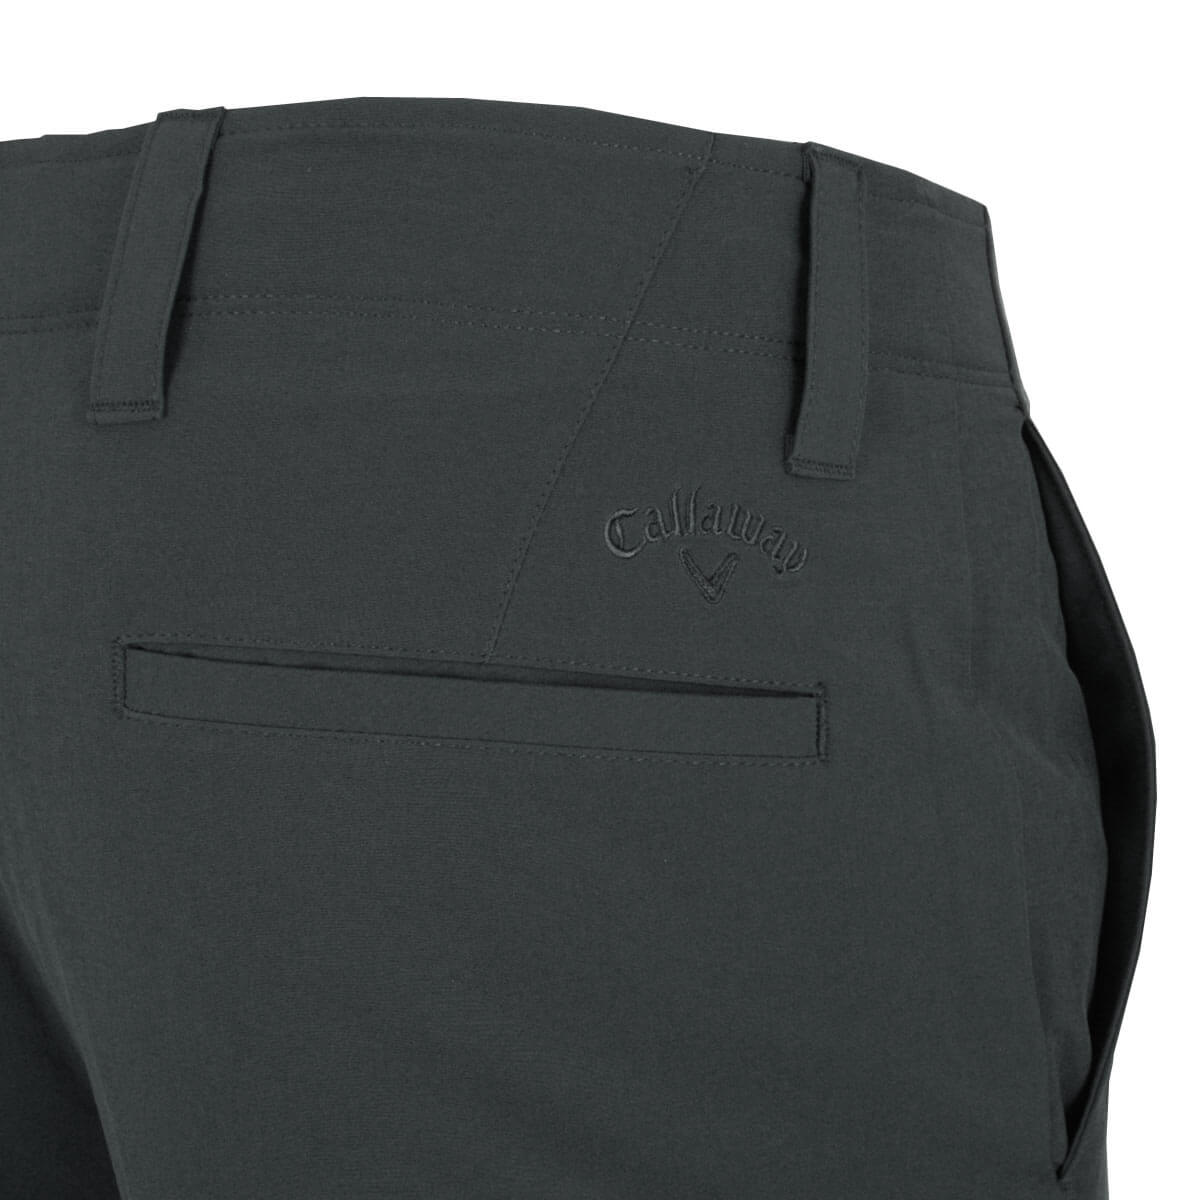 Callaway-Mens-2019-Chev-Tech-II-Lightweight-Stretch-Golf-Trousers-28-OFF-RRP thumbnail 4